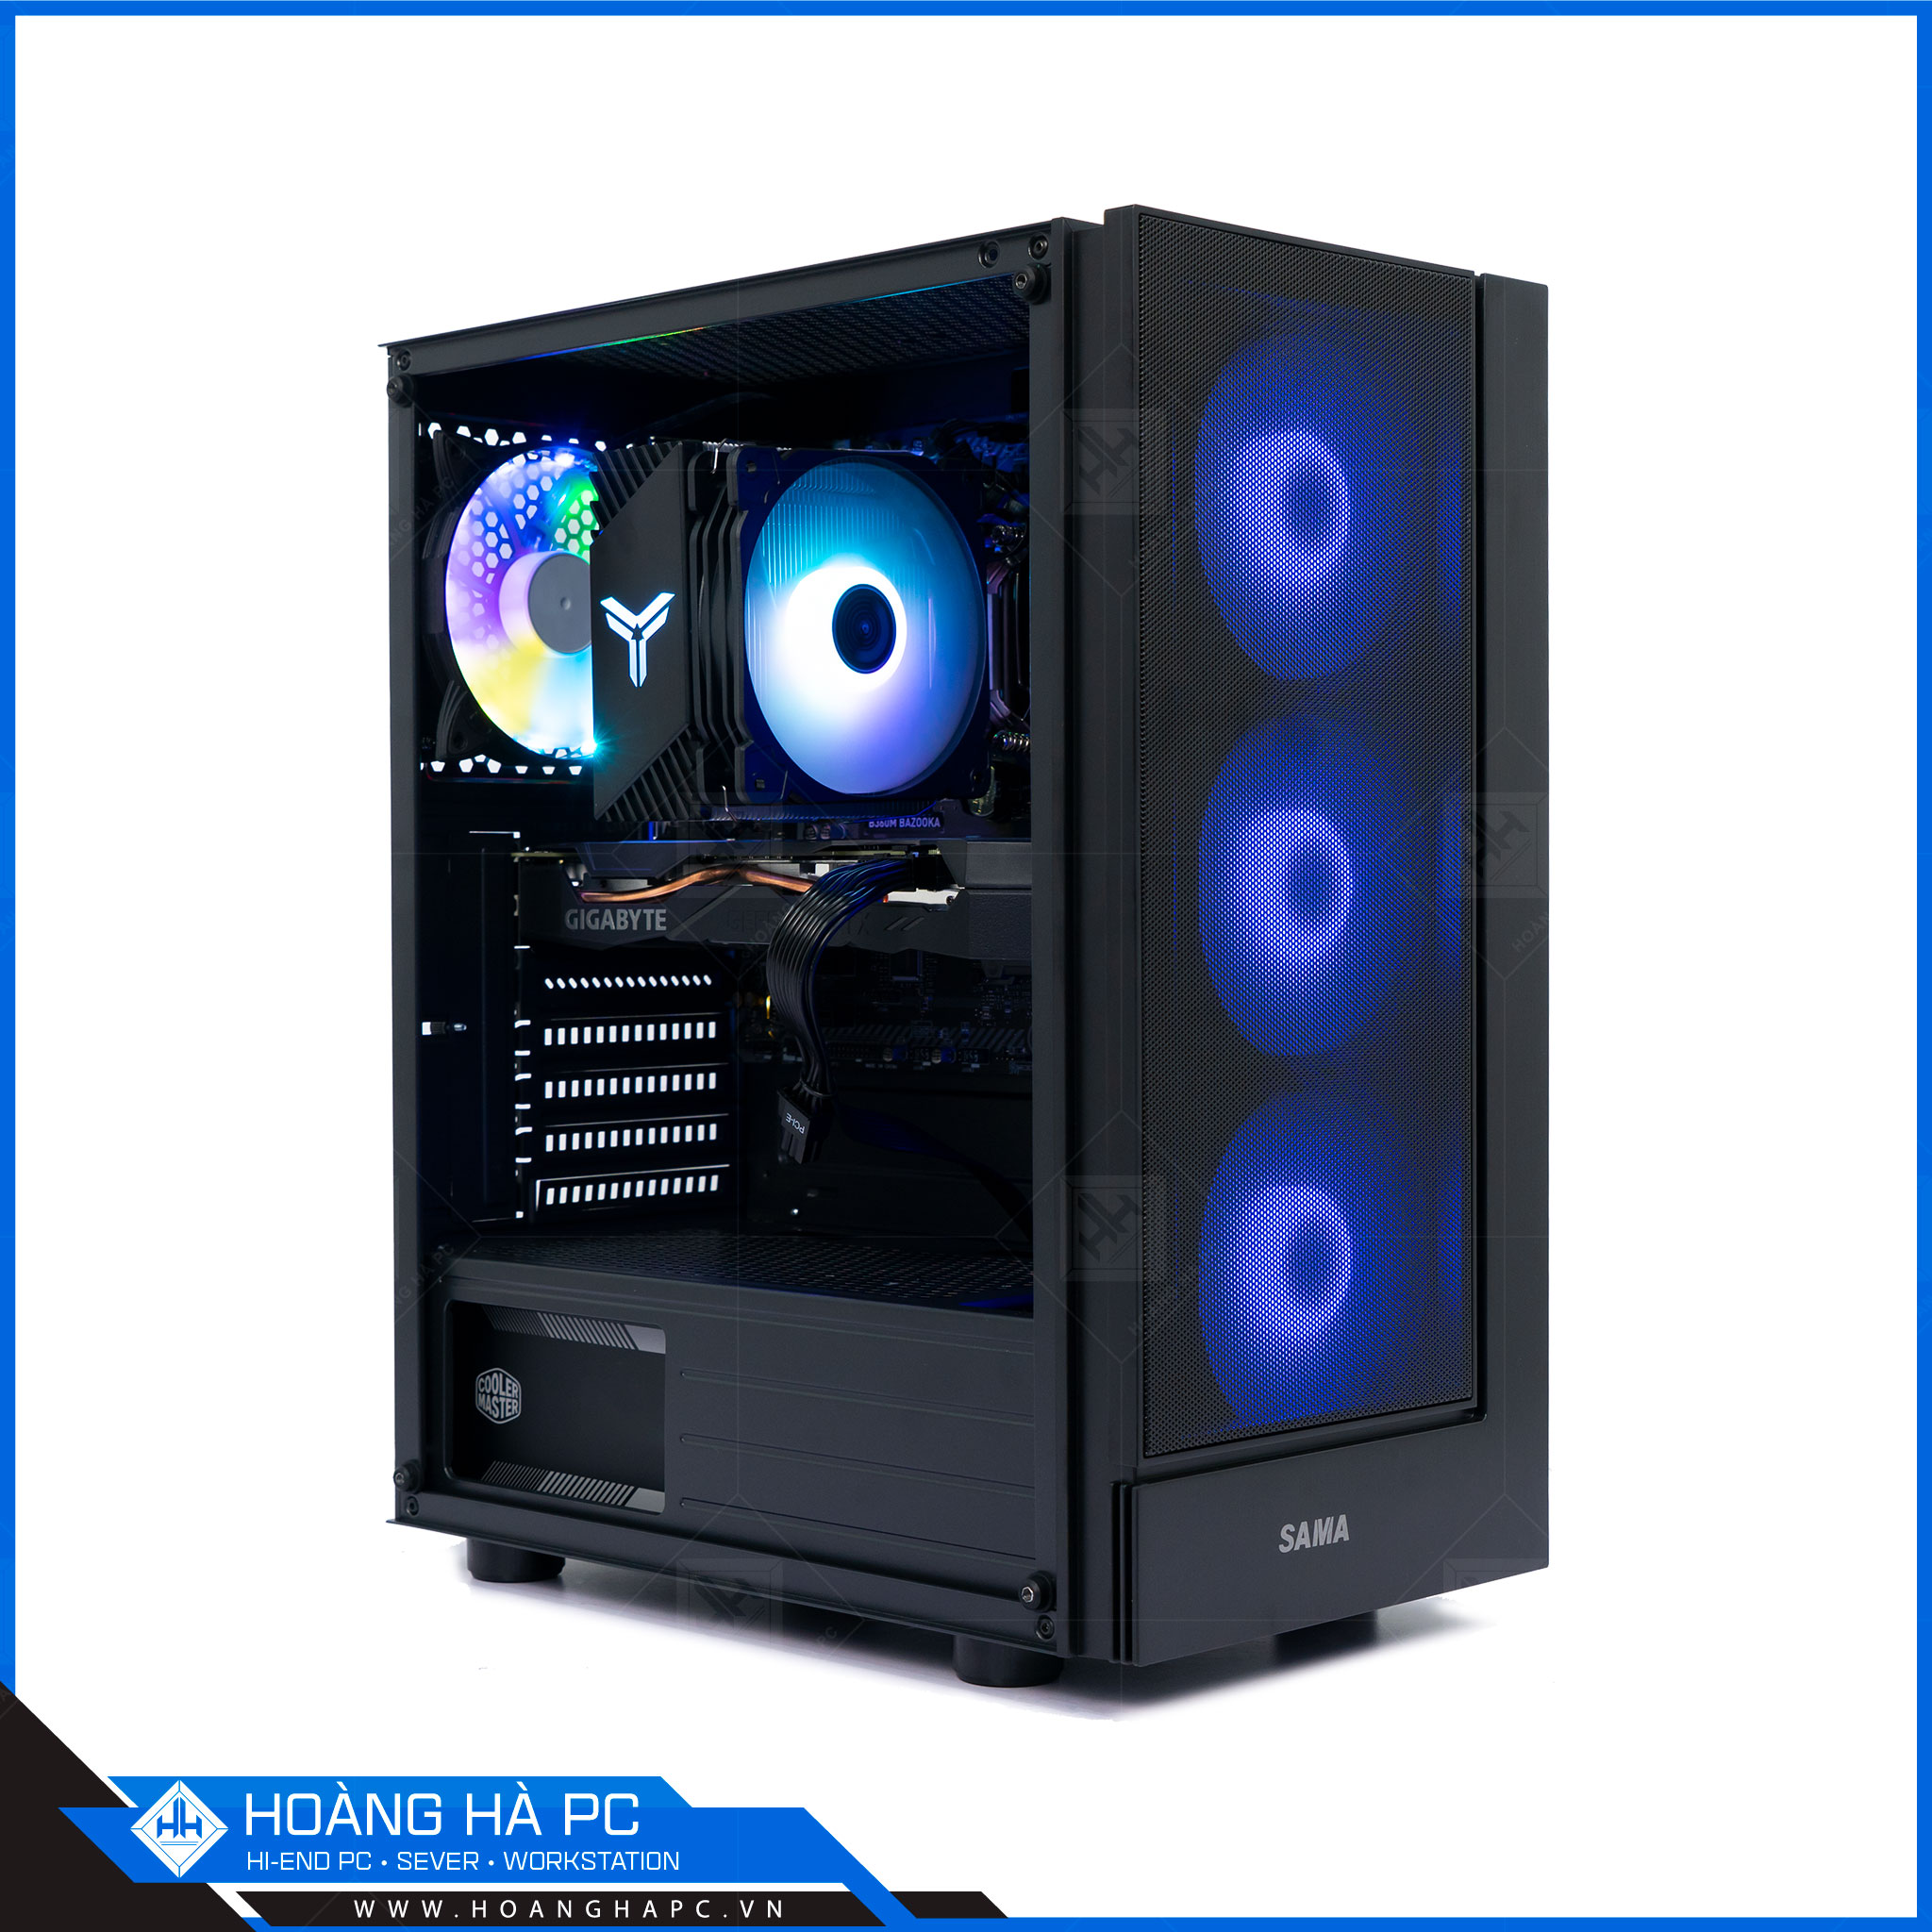 HHPC GAMING INTEL CORE i5 9600K | 16G | NVIDIA RTX 2060 6G